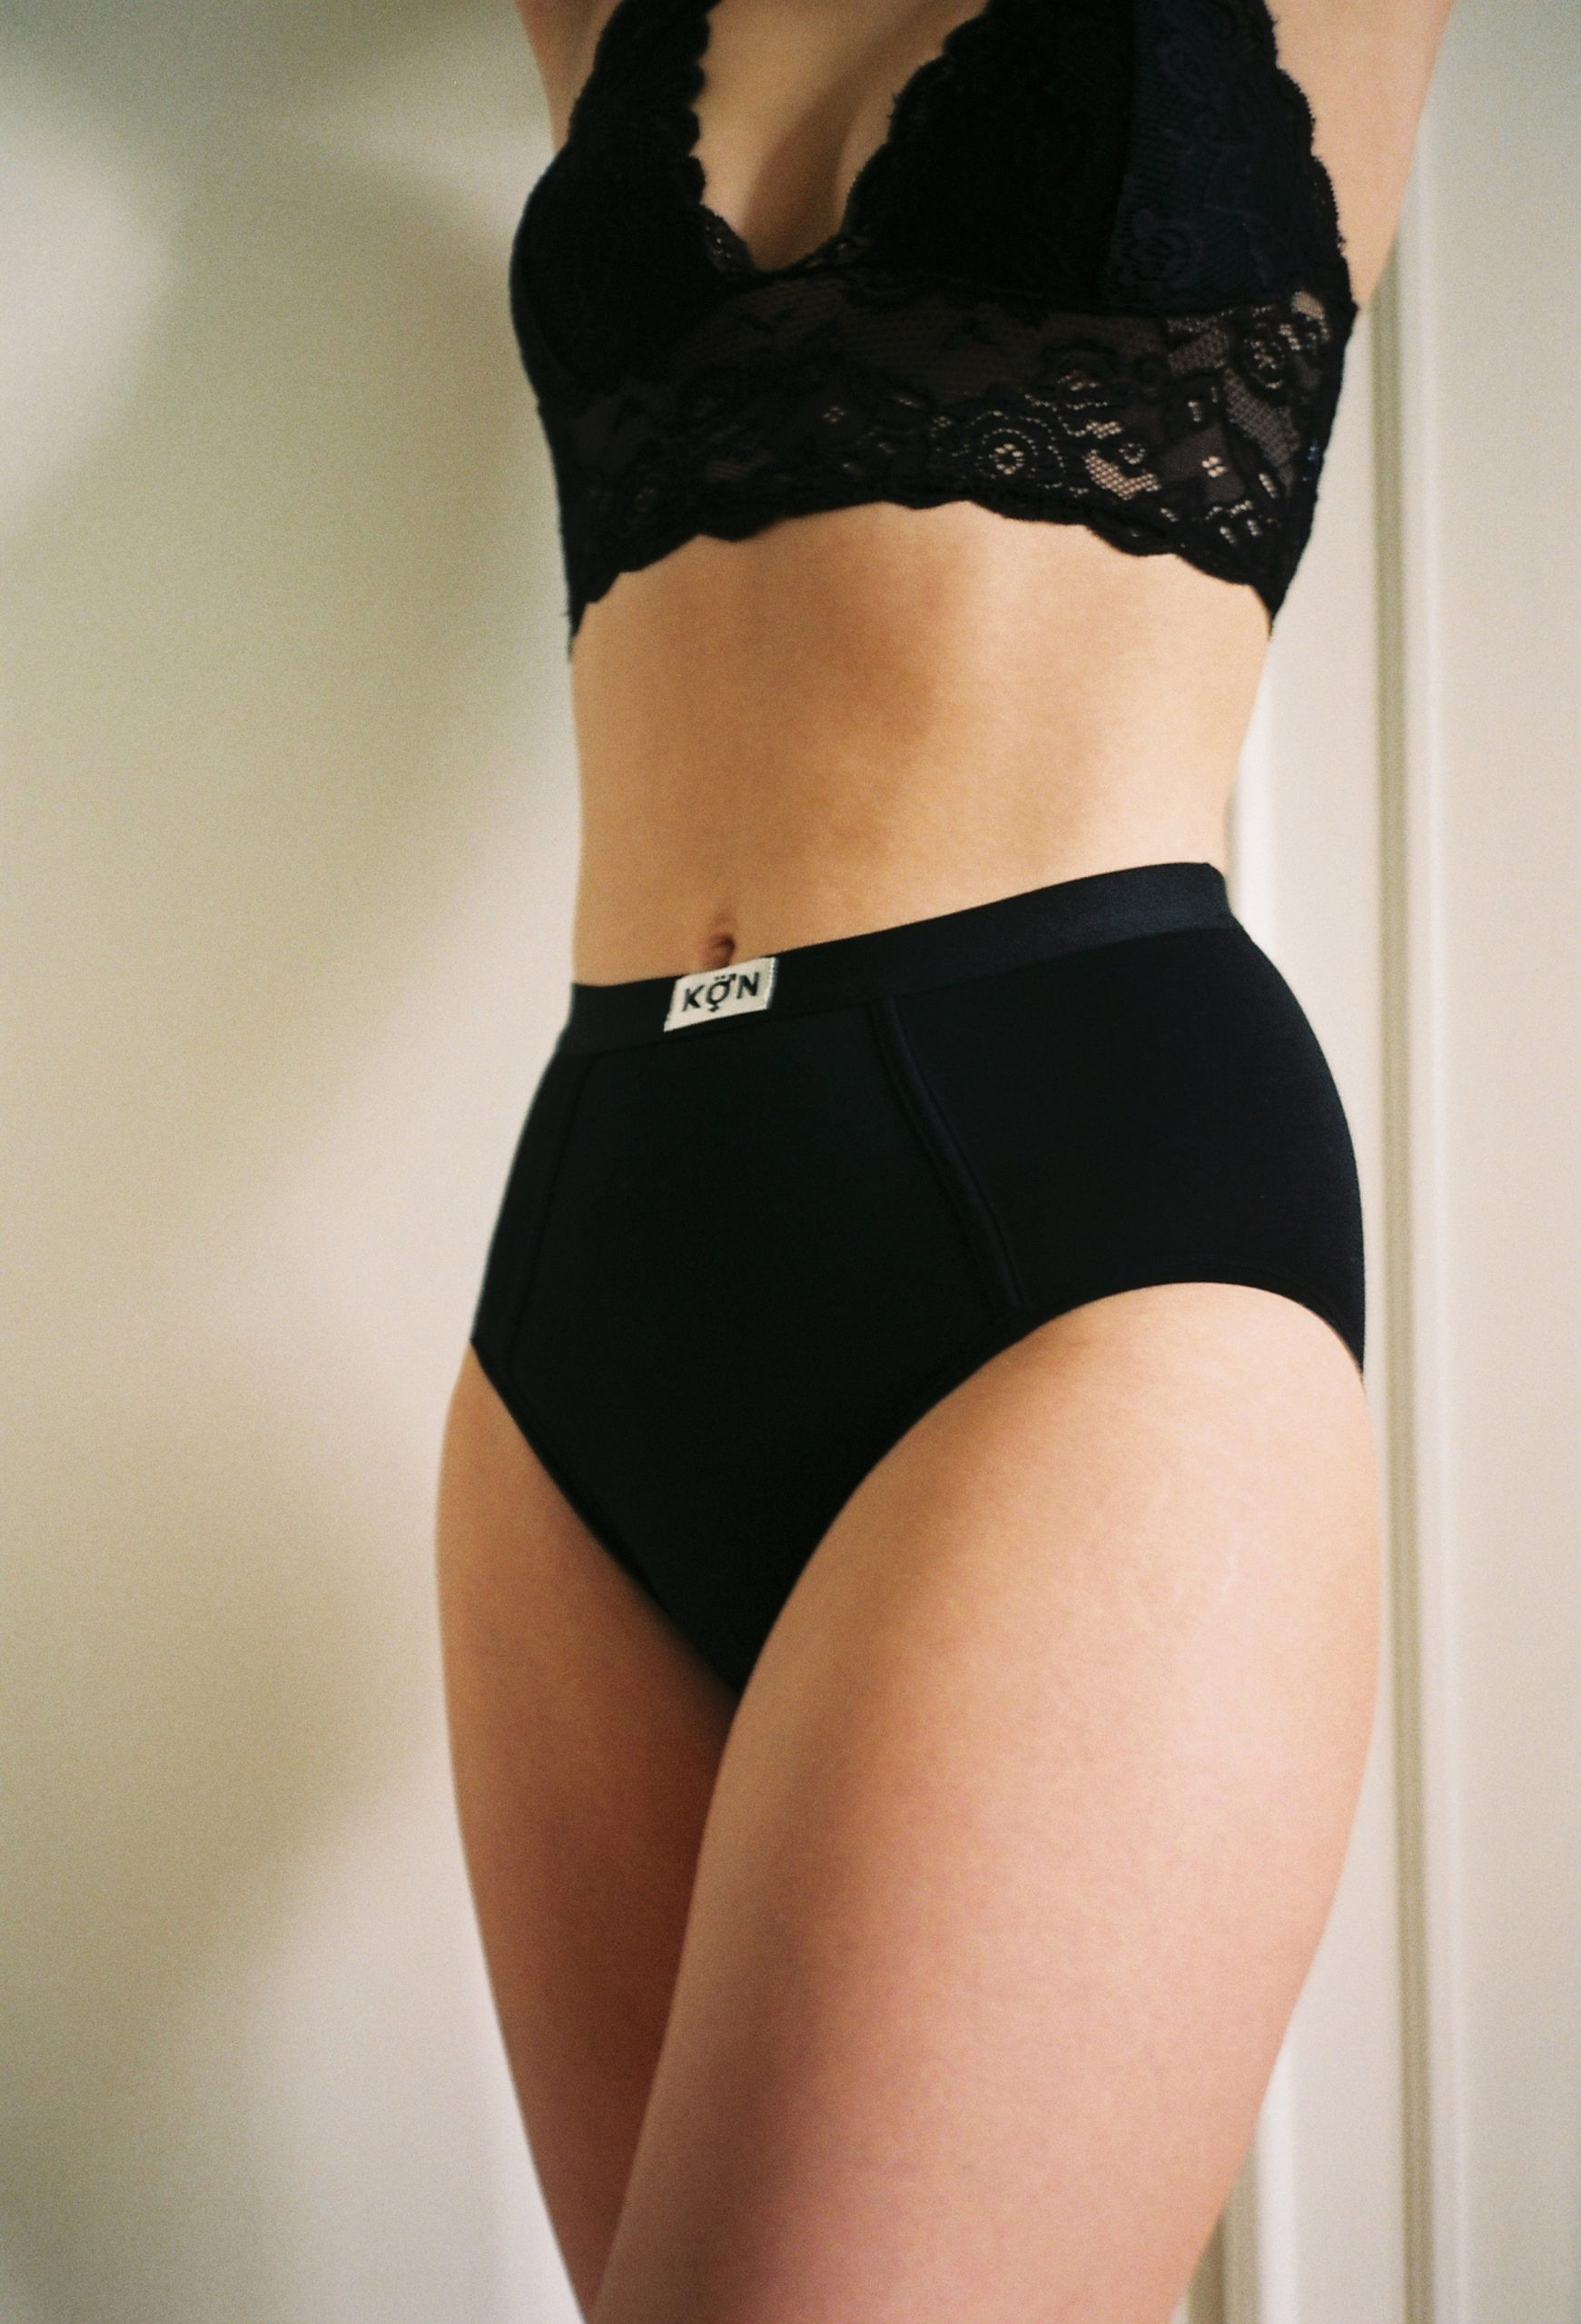 Kön offers gender-neutral underwear made from cellulose fibres